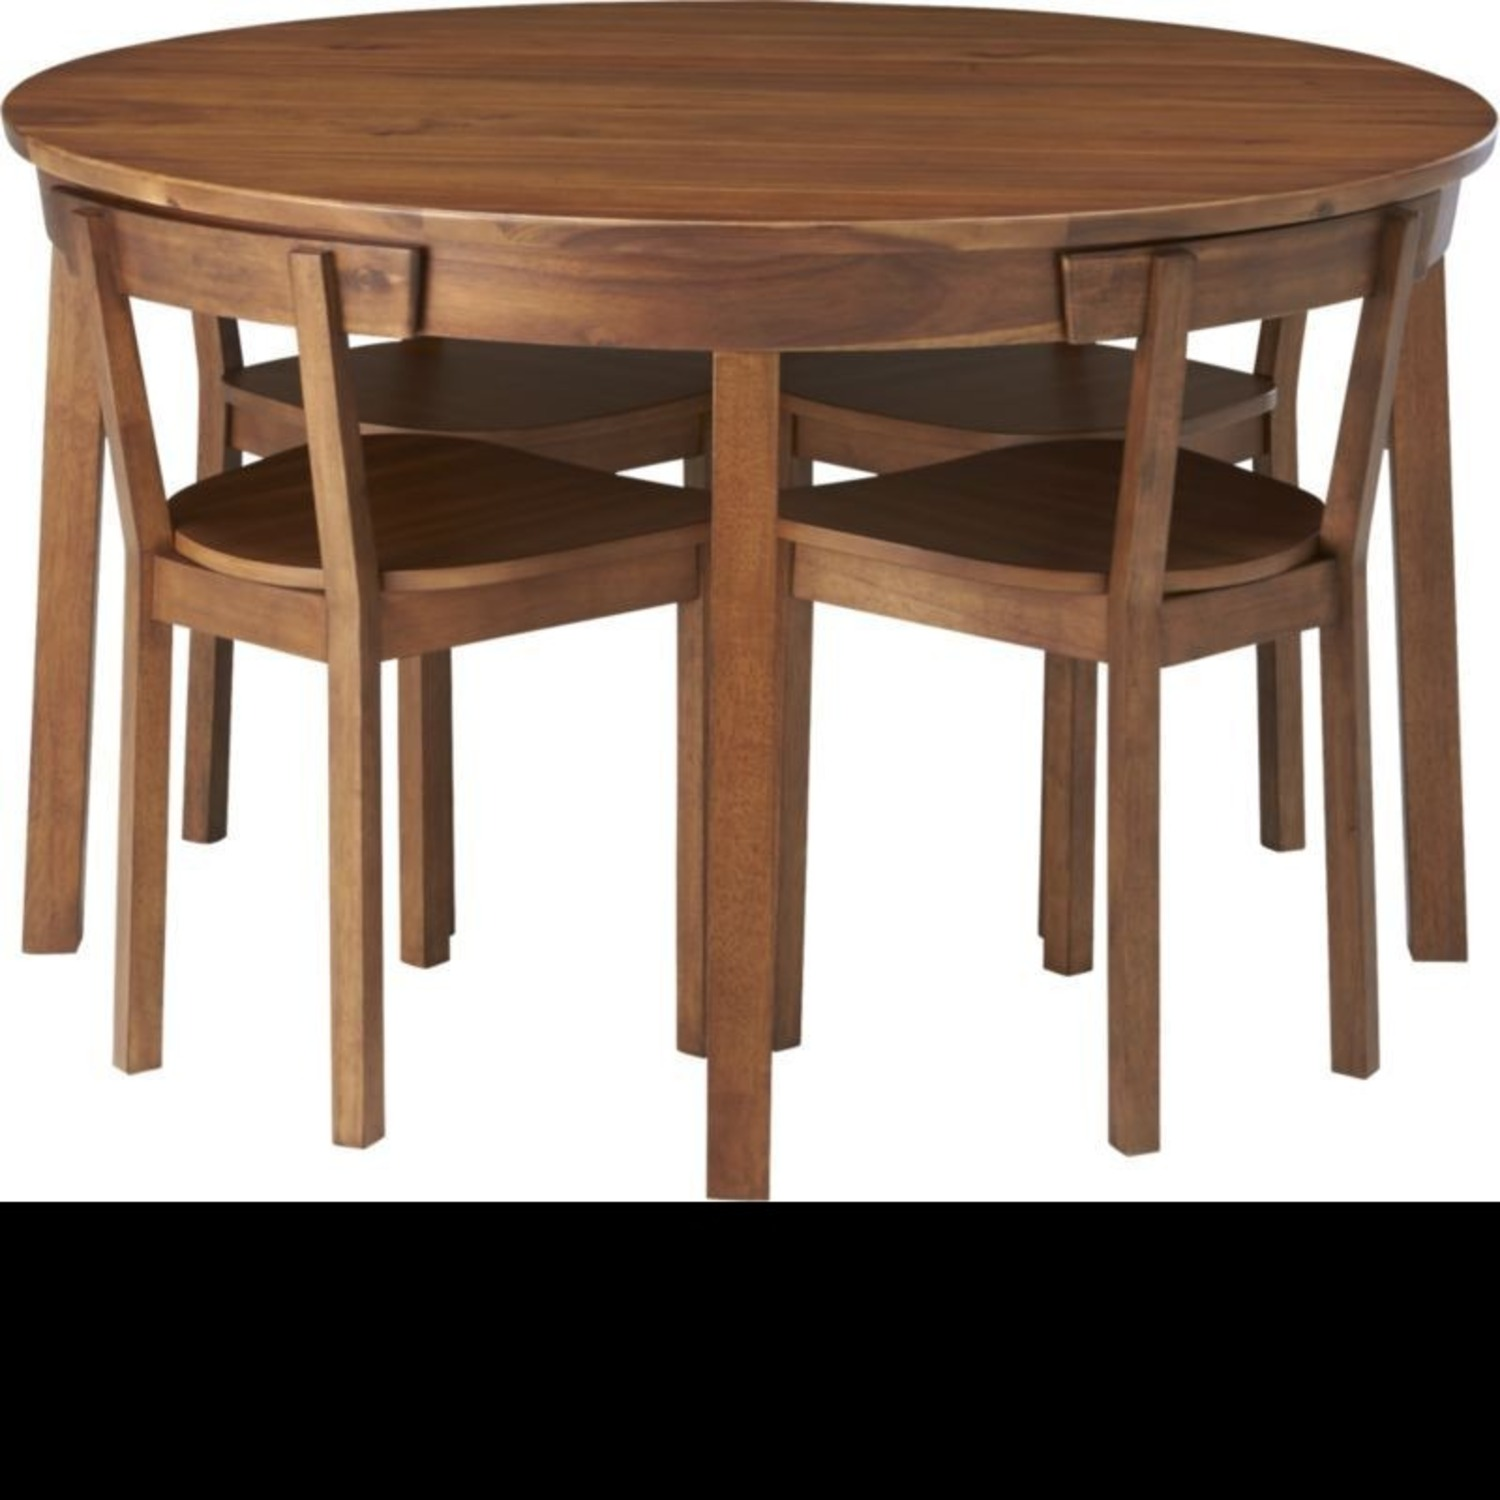 CB2 Round Dining Table w/ 4 Inlaid Chairs - image-1